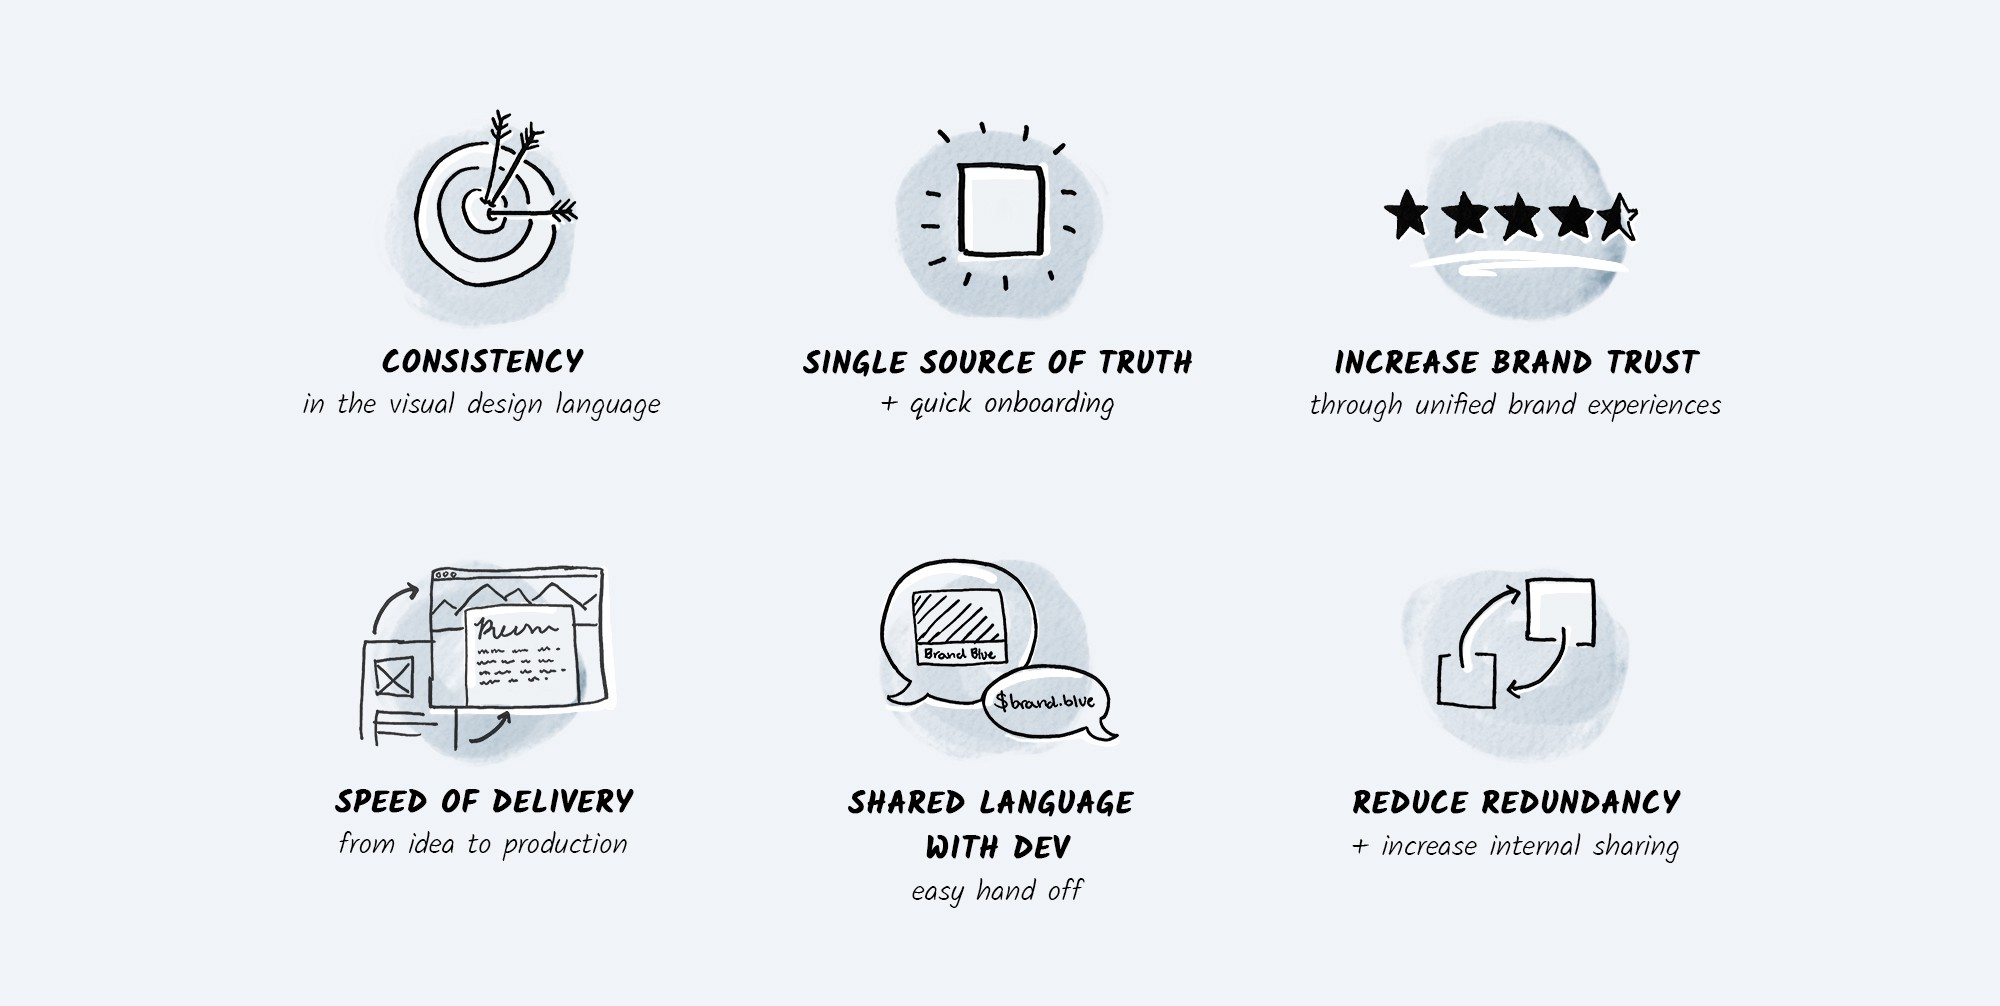 The various benefits moonello associates with using a design system